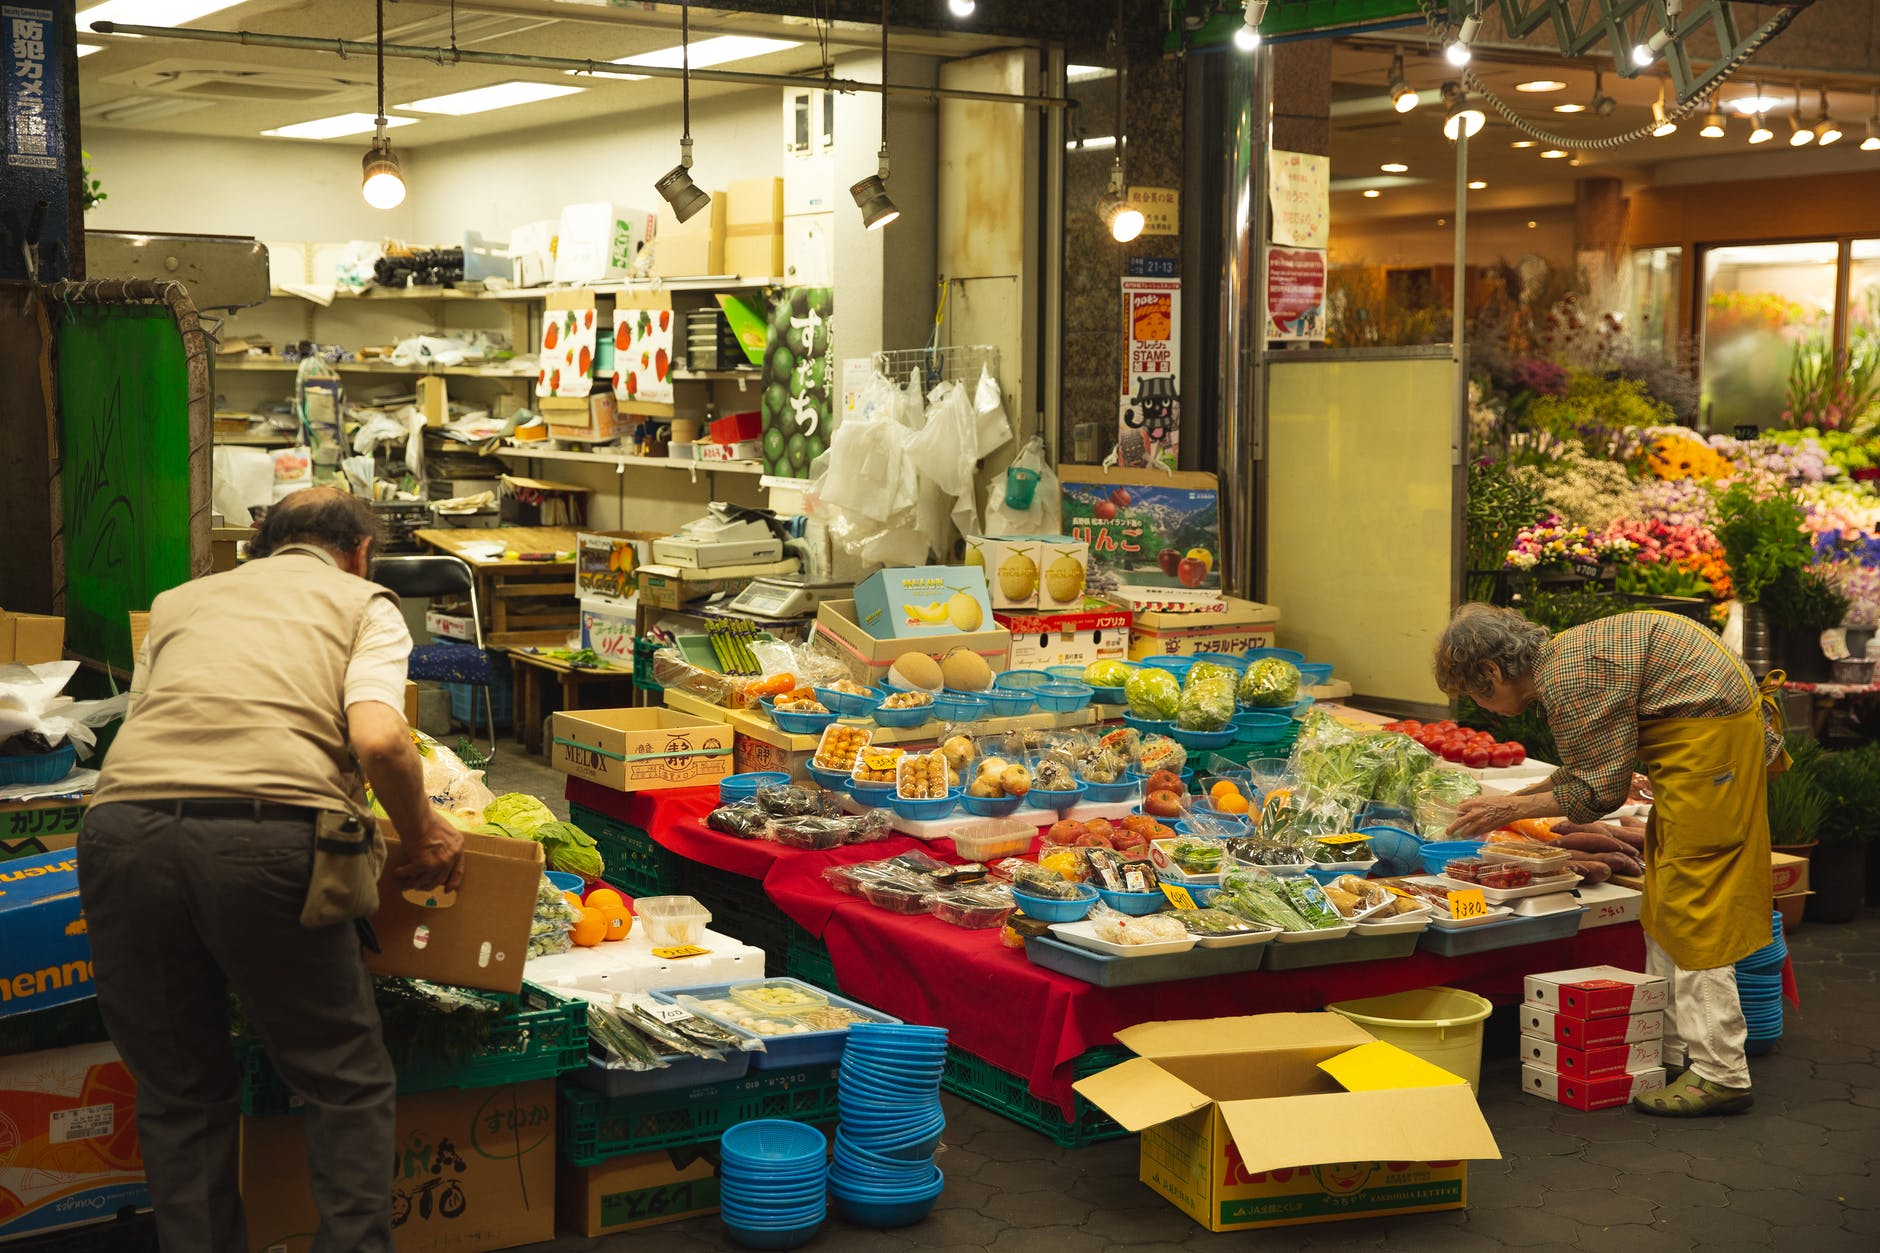 stall with fruits and vegetables in market